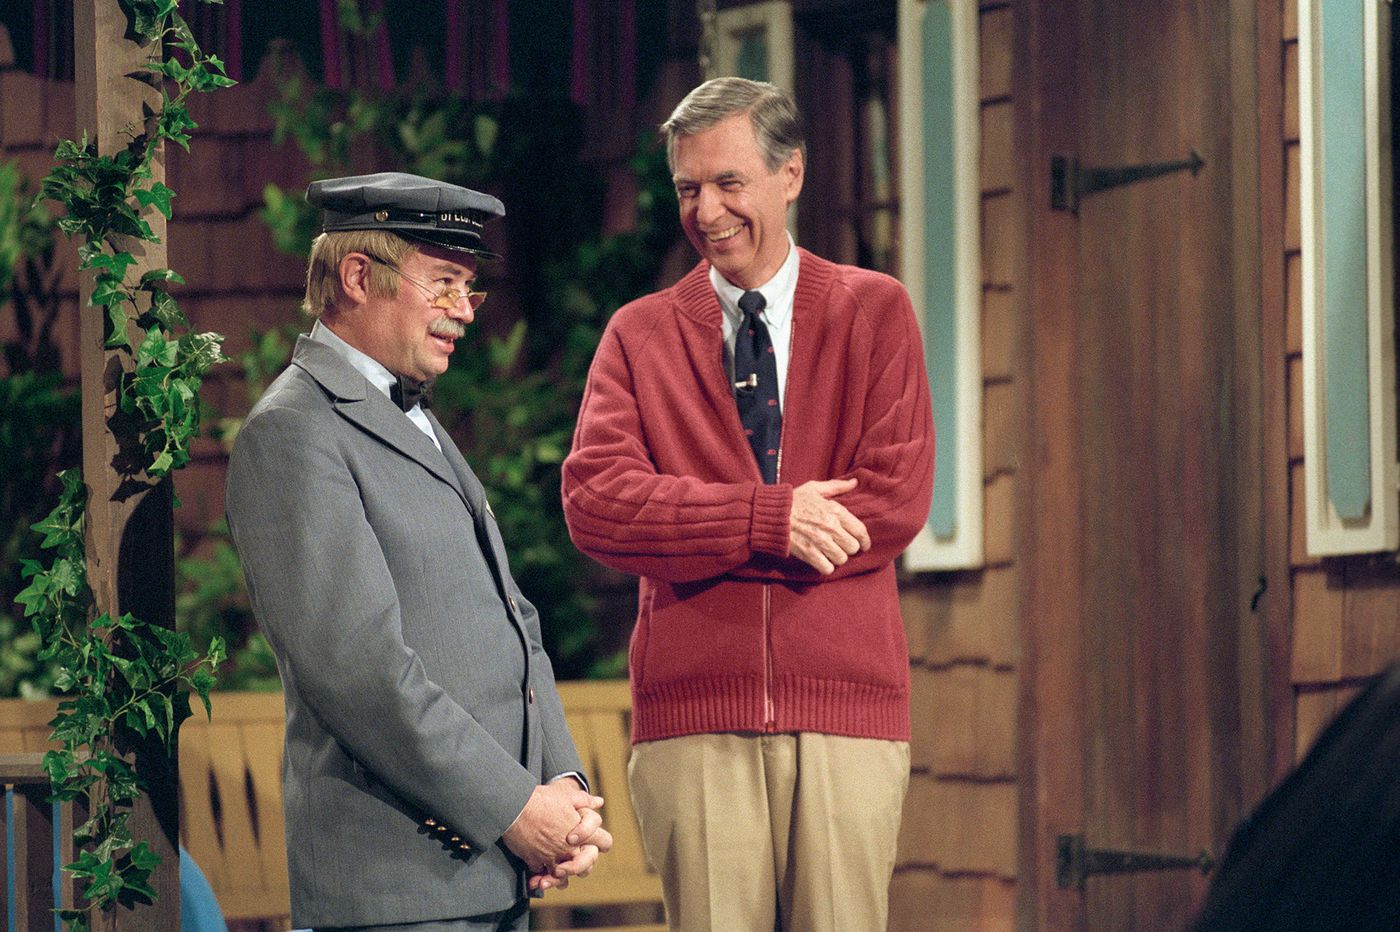 In Pennsylvania May 23 Will Be 143 Day In Tribute To Mr Rogers The State S Kindest